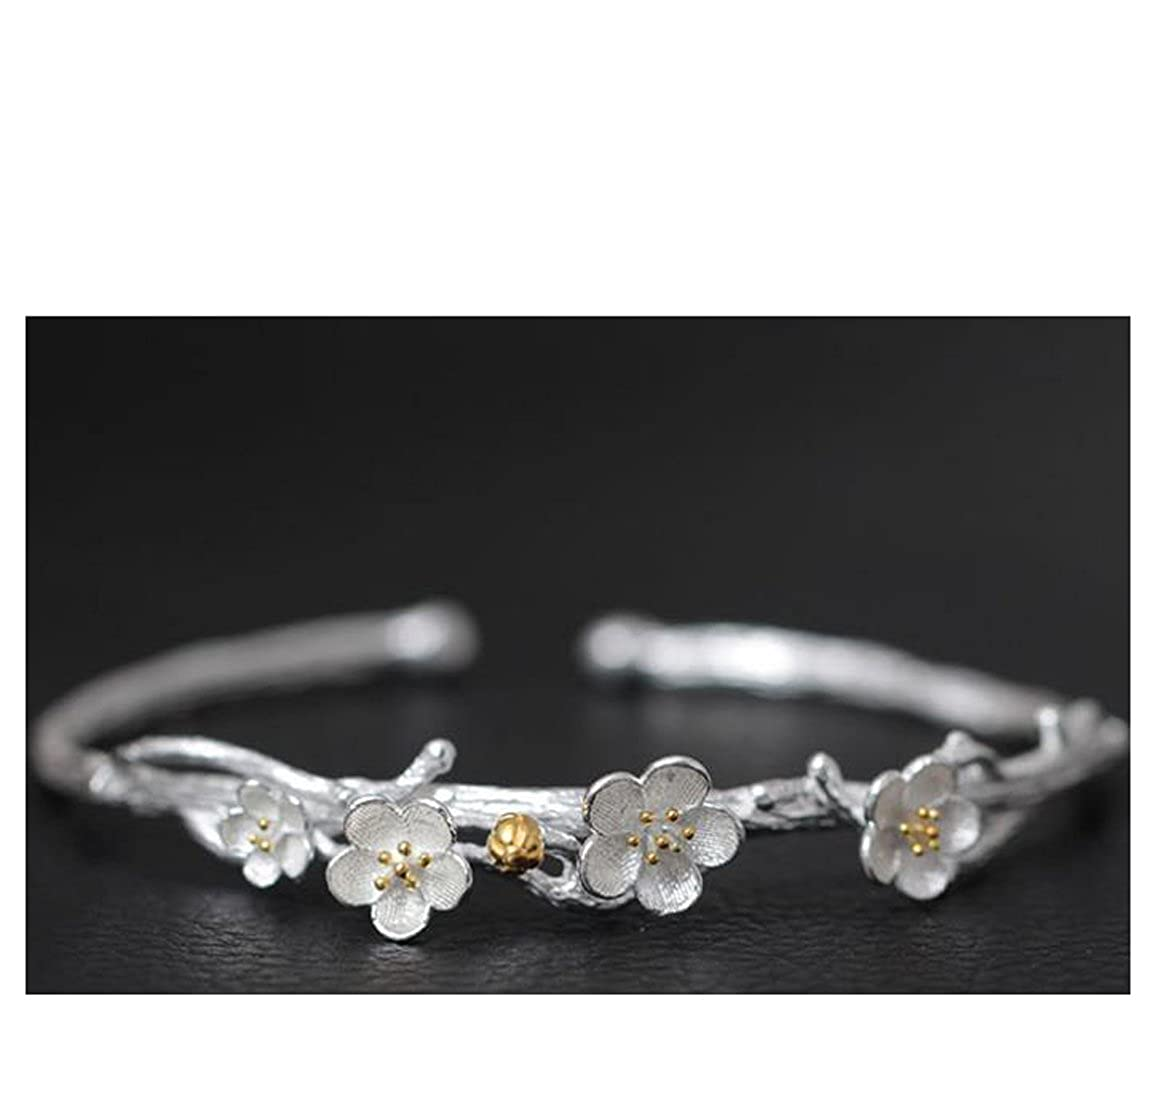 SHEIS LOVING Bangles Bracelet For Women Girls Ladies Genuine 925 Sterling Silver Bangles With Yellow Gold Plated For Sensitive Skin Plum Flower Silver Bangles Adjustable Size Good Quality Gift